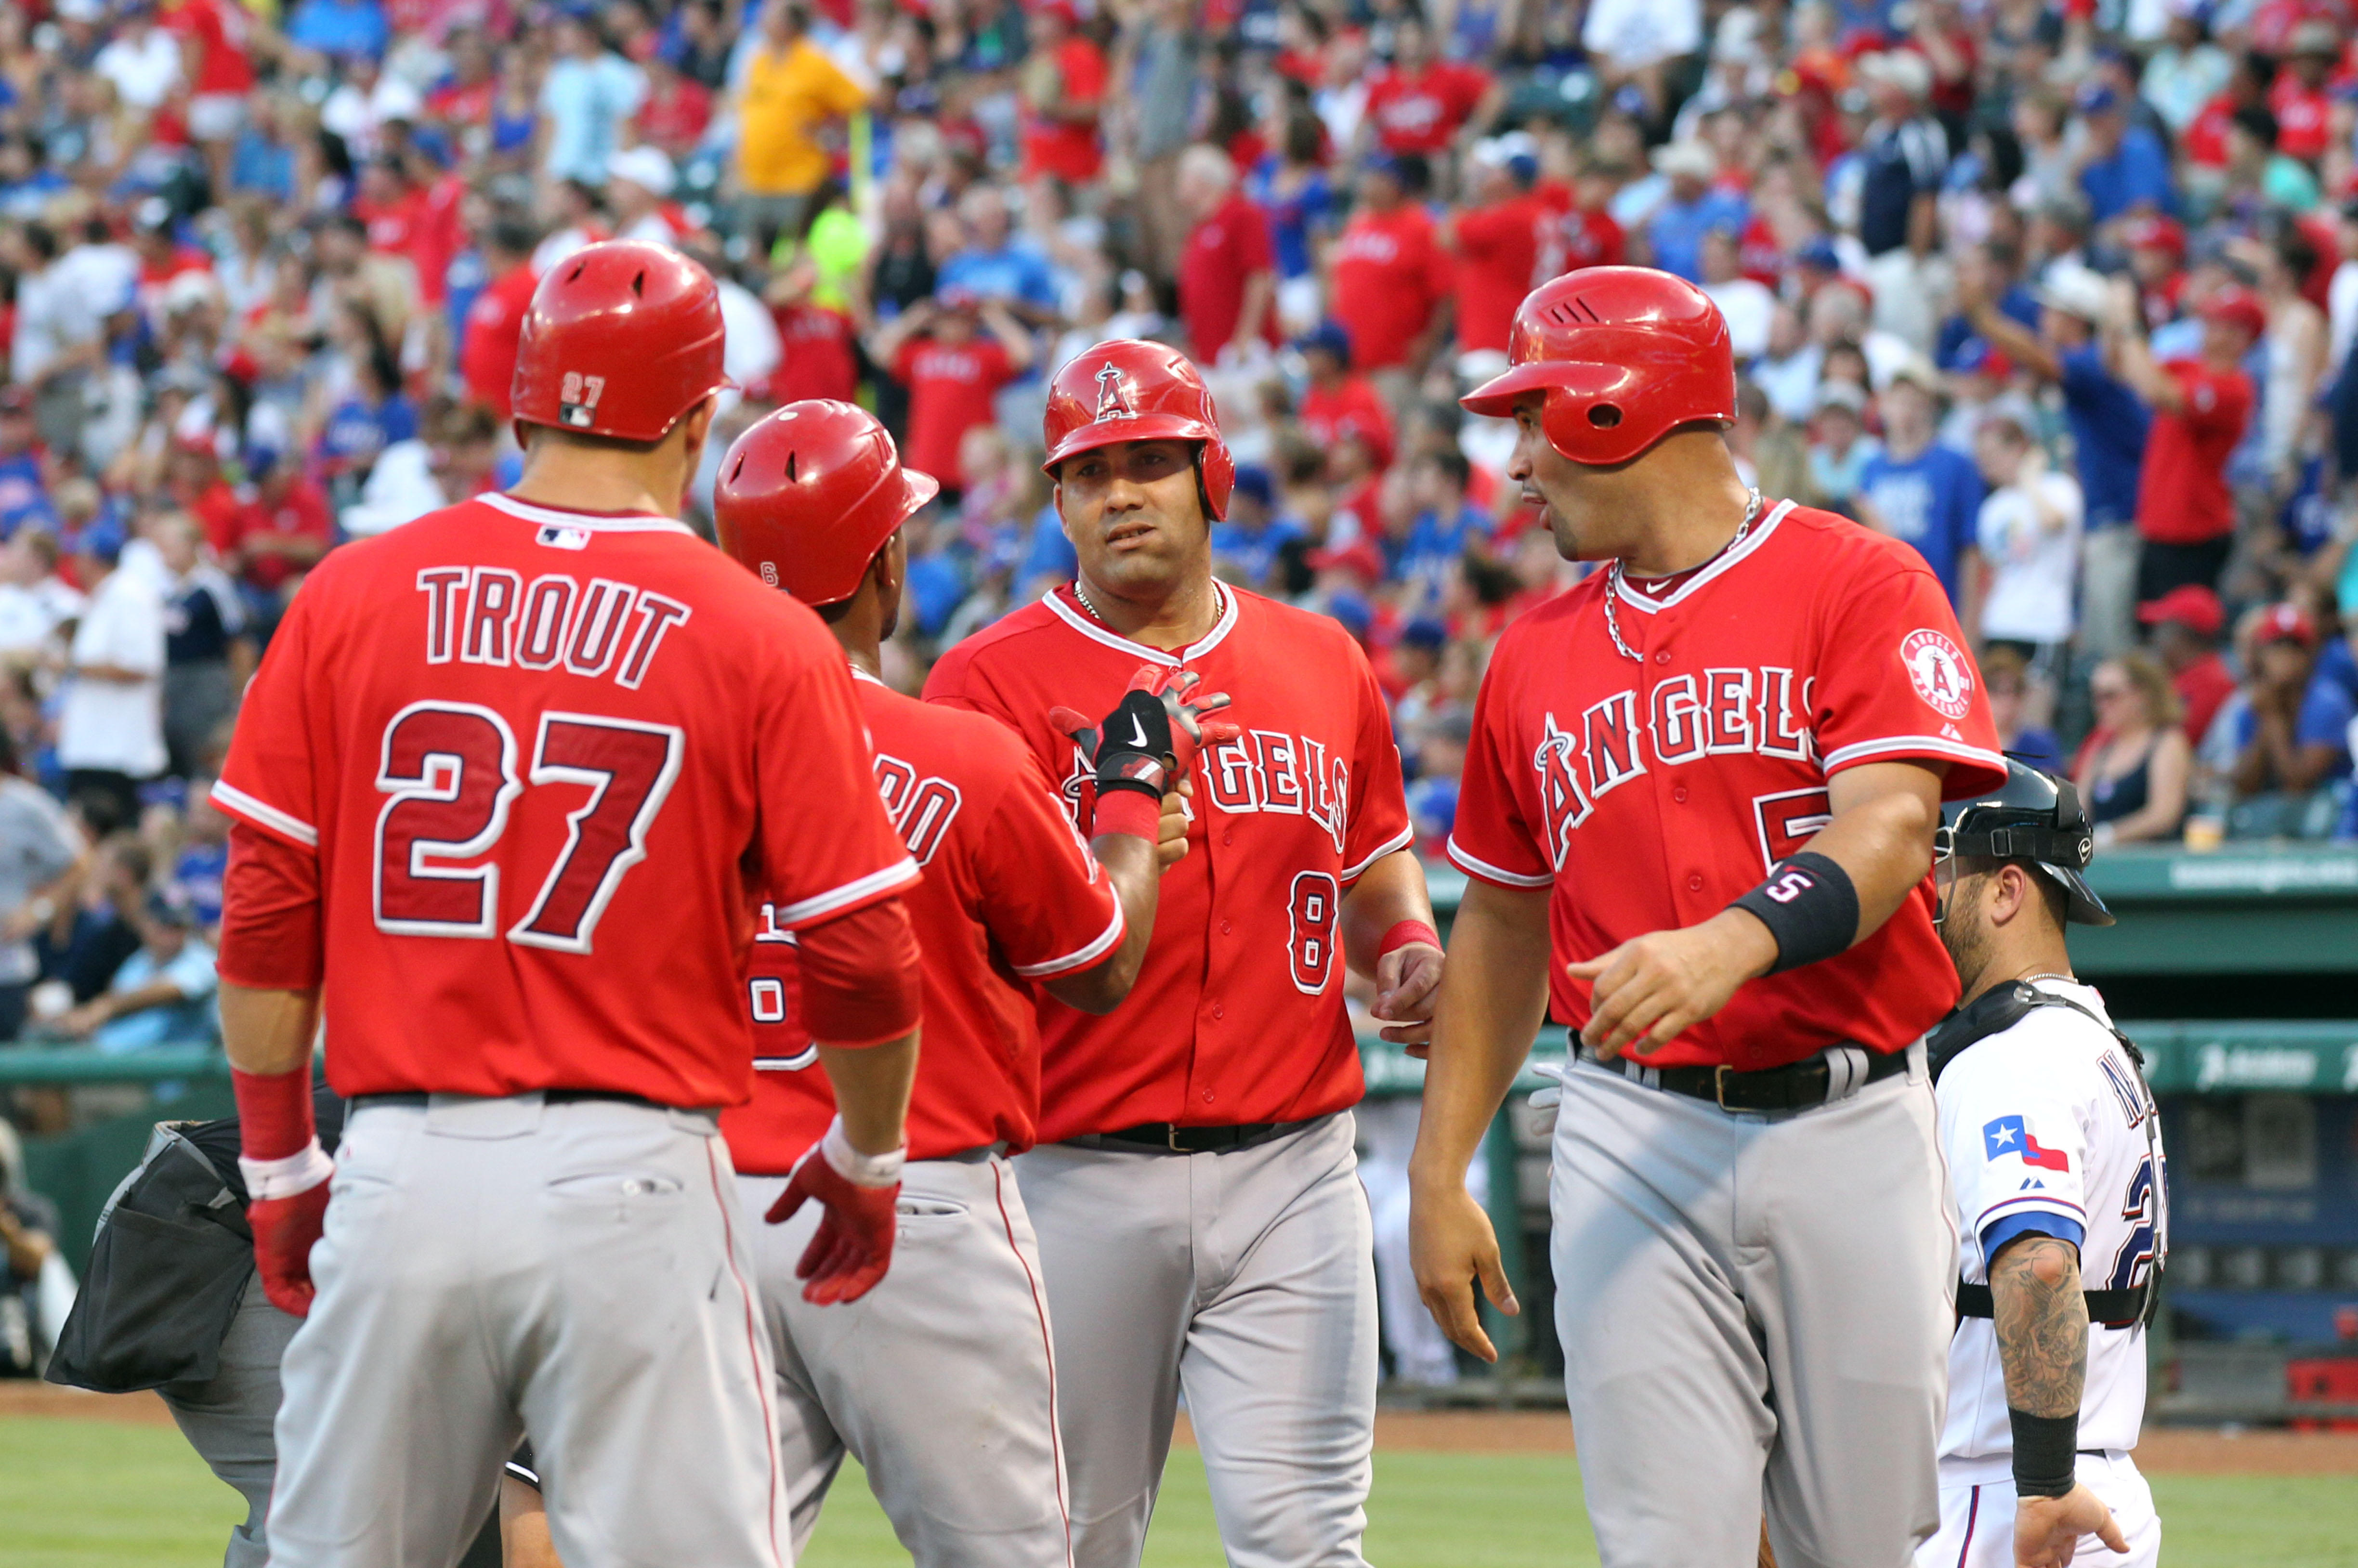 The Los Angeles Angels' Of Anaheim: Season 2016's Outlook